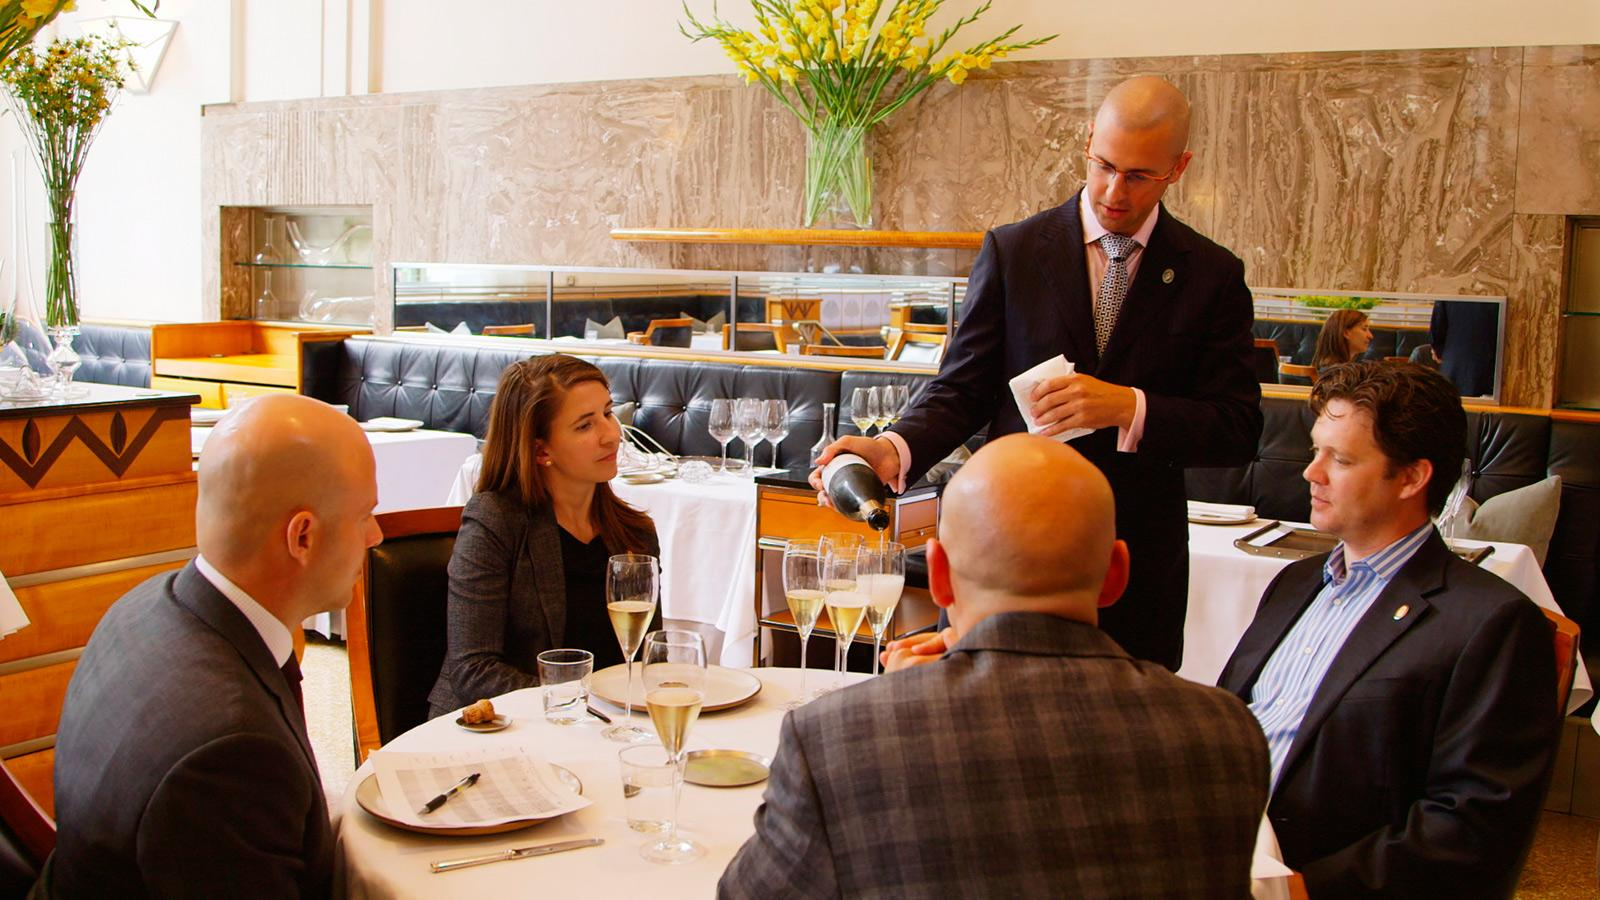 MS candidate Josh Nadel (standing) attempts to serve equal pours to Master Sommeliers Dustin Wilson, Laura Maniec, Geoff Kruth and Sabato Sagaria.